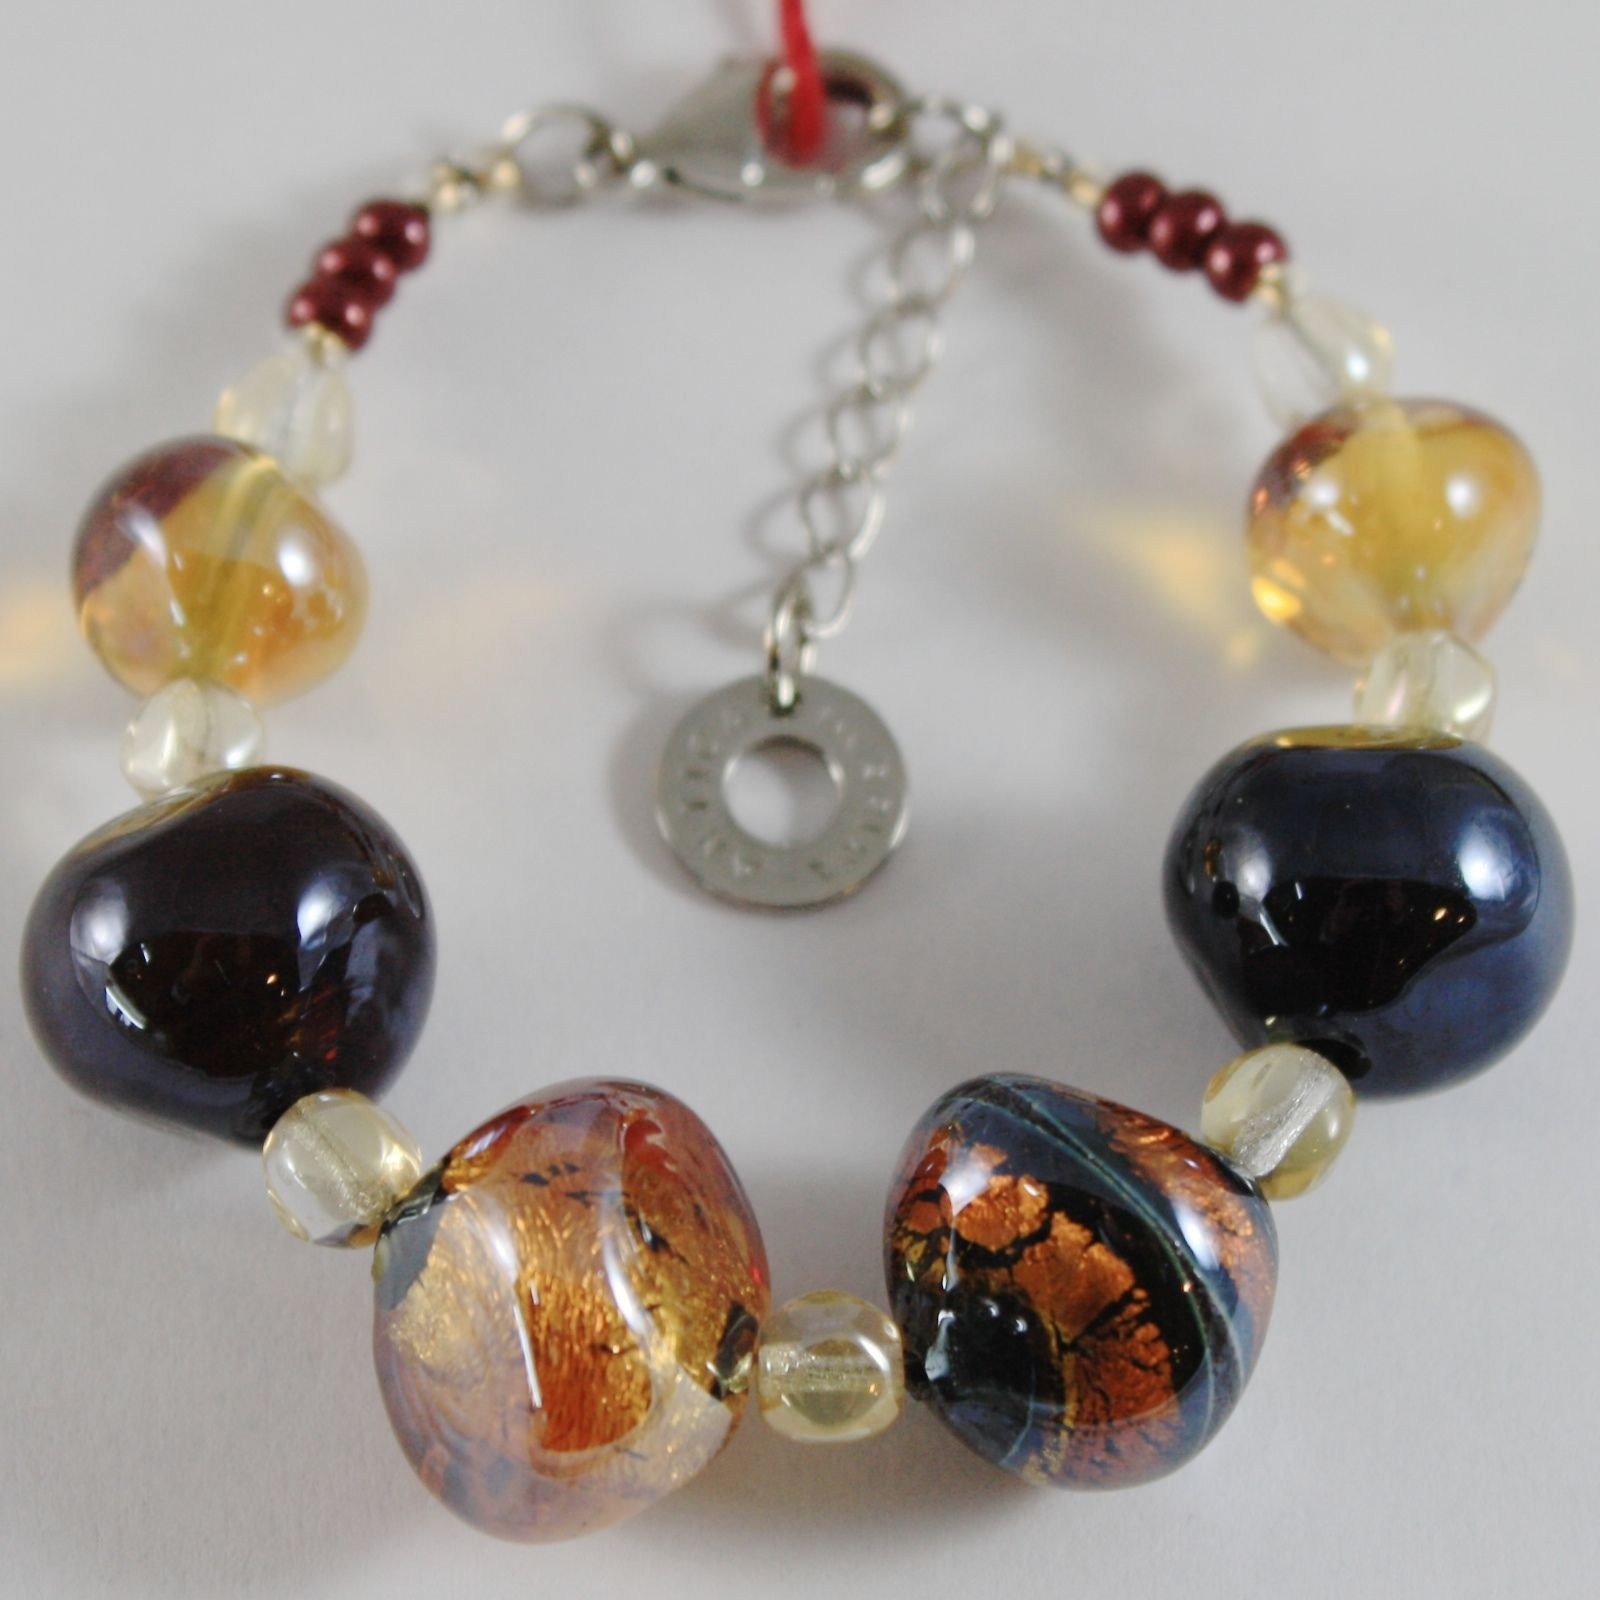 ANTICA MURRINA VENEZIA BRACELET MULTICOLOR, BIG AMBER AND BLACK NUGGETS